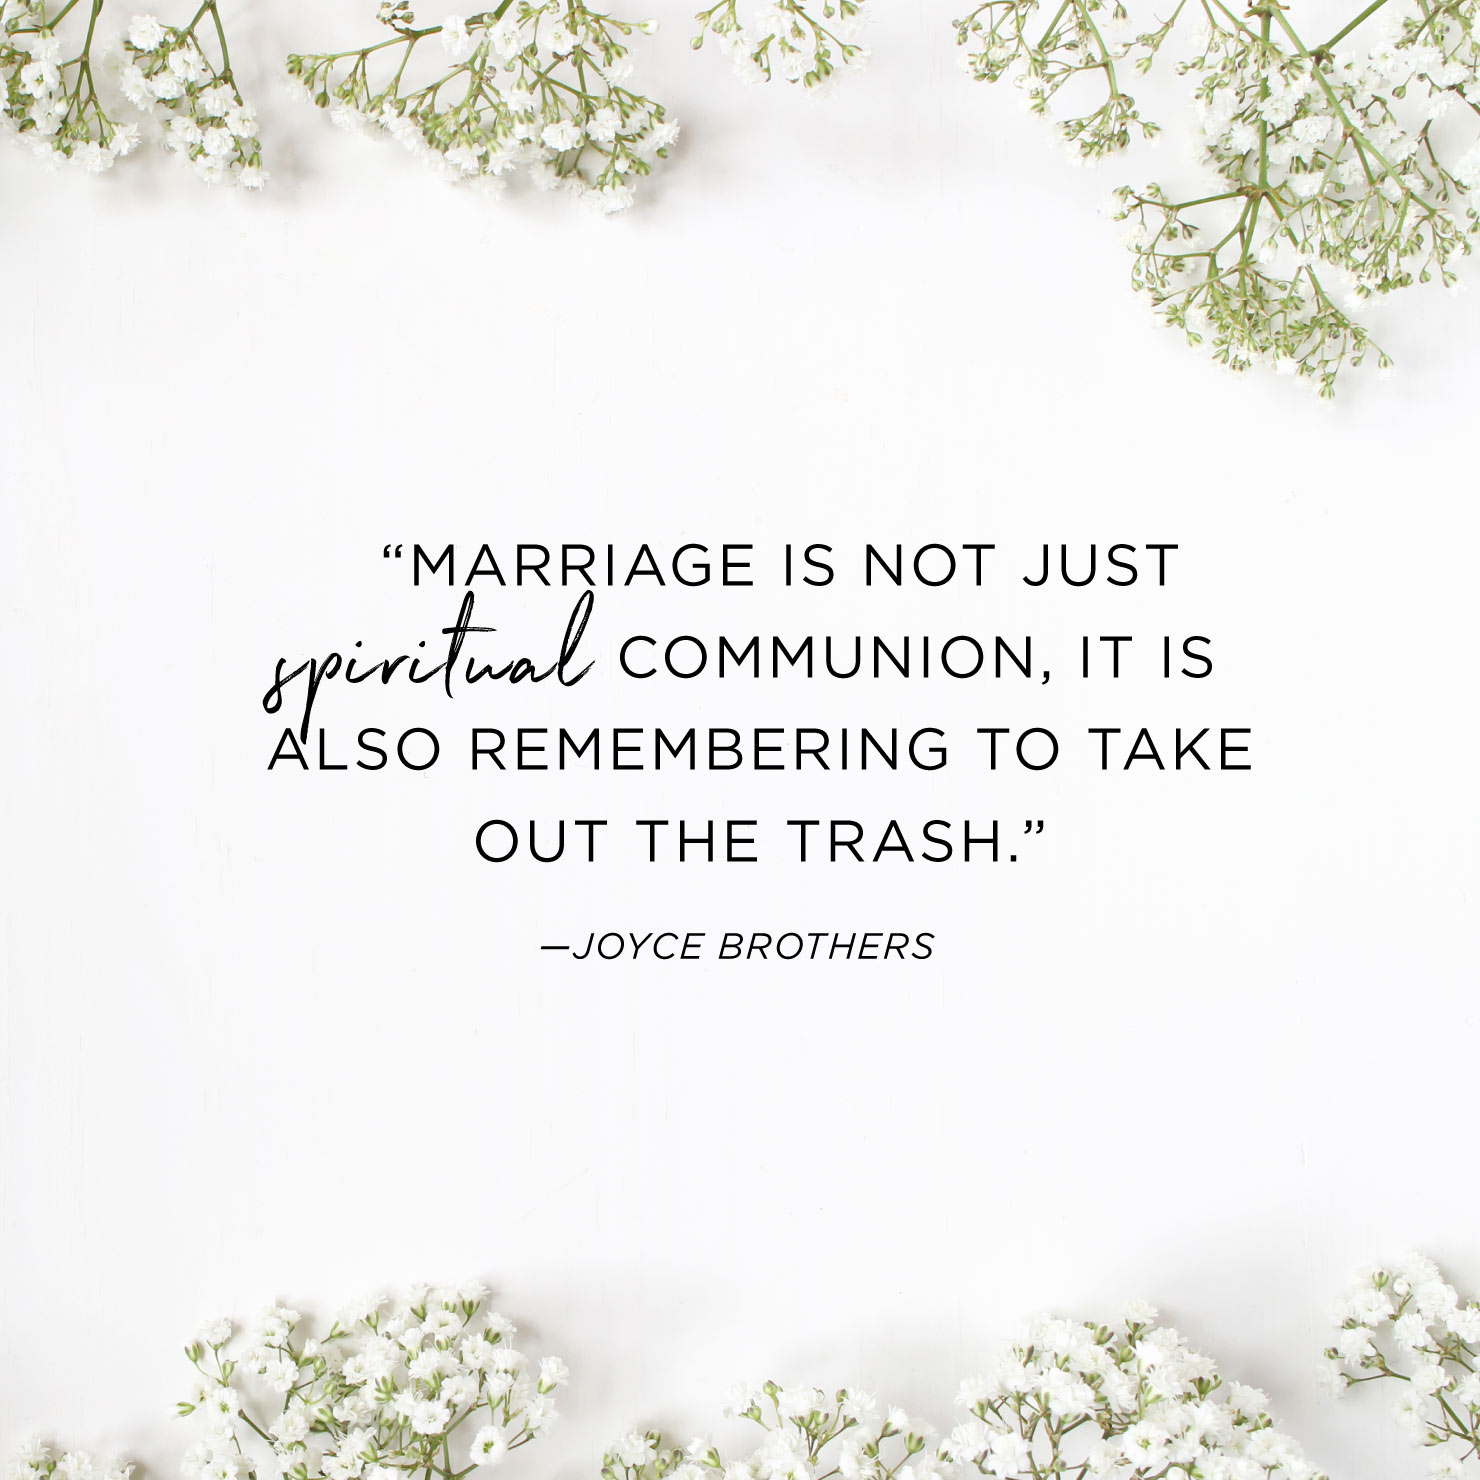 60 Happy Anniversary Quotes to Celebrate Your Love | Shutterfly